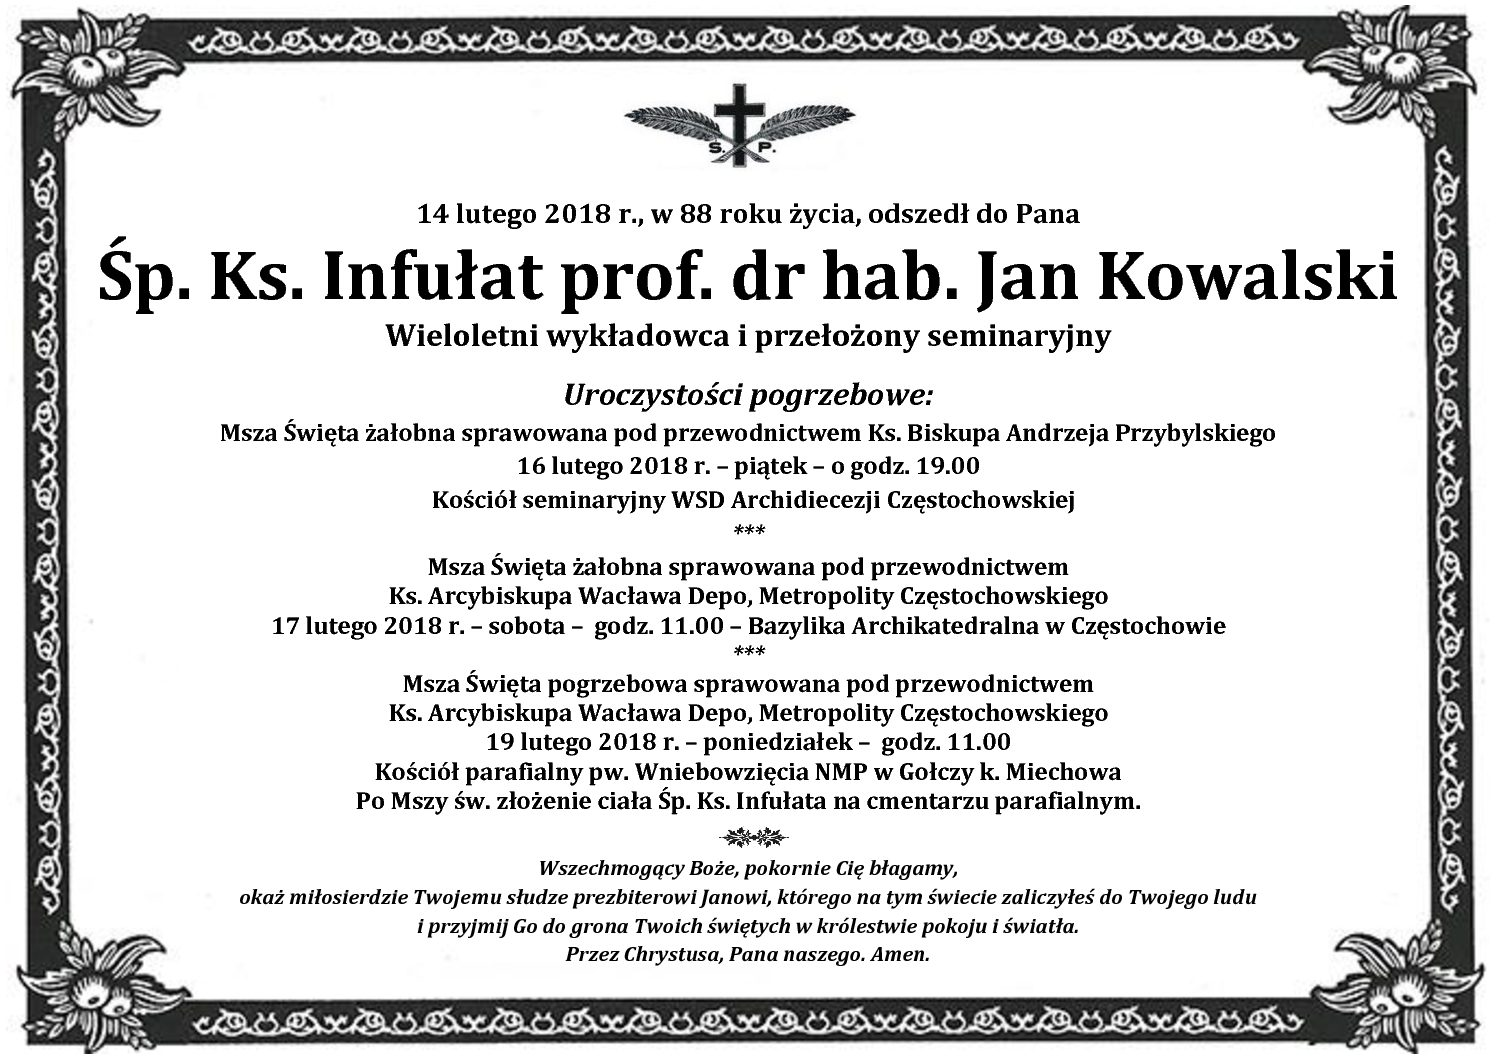 Śp. ks. prof. Jan Kowalski